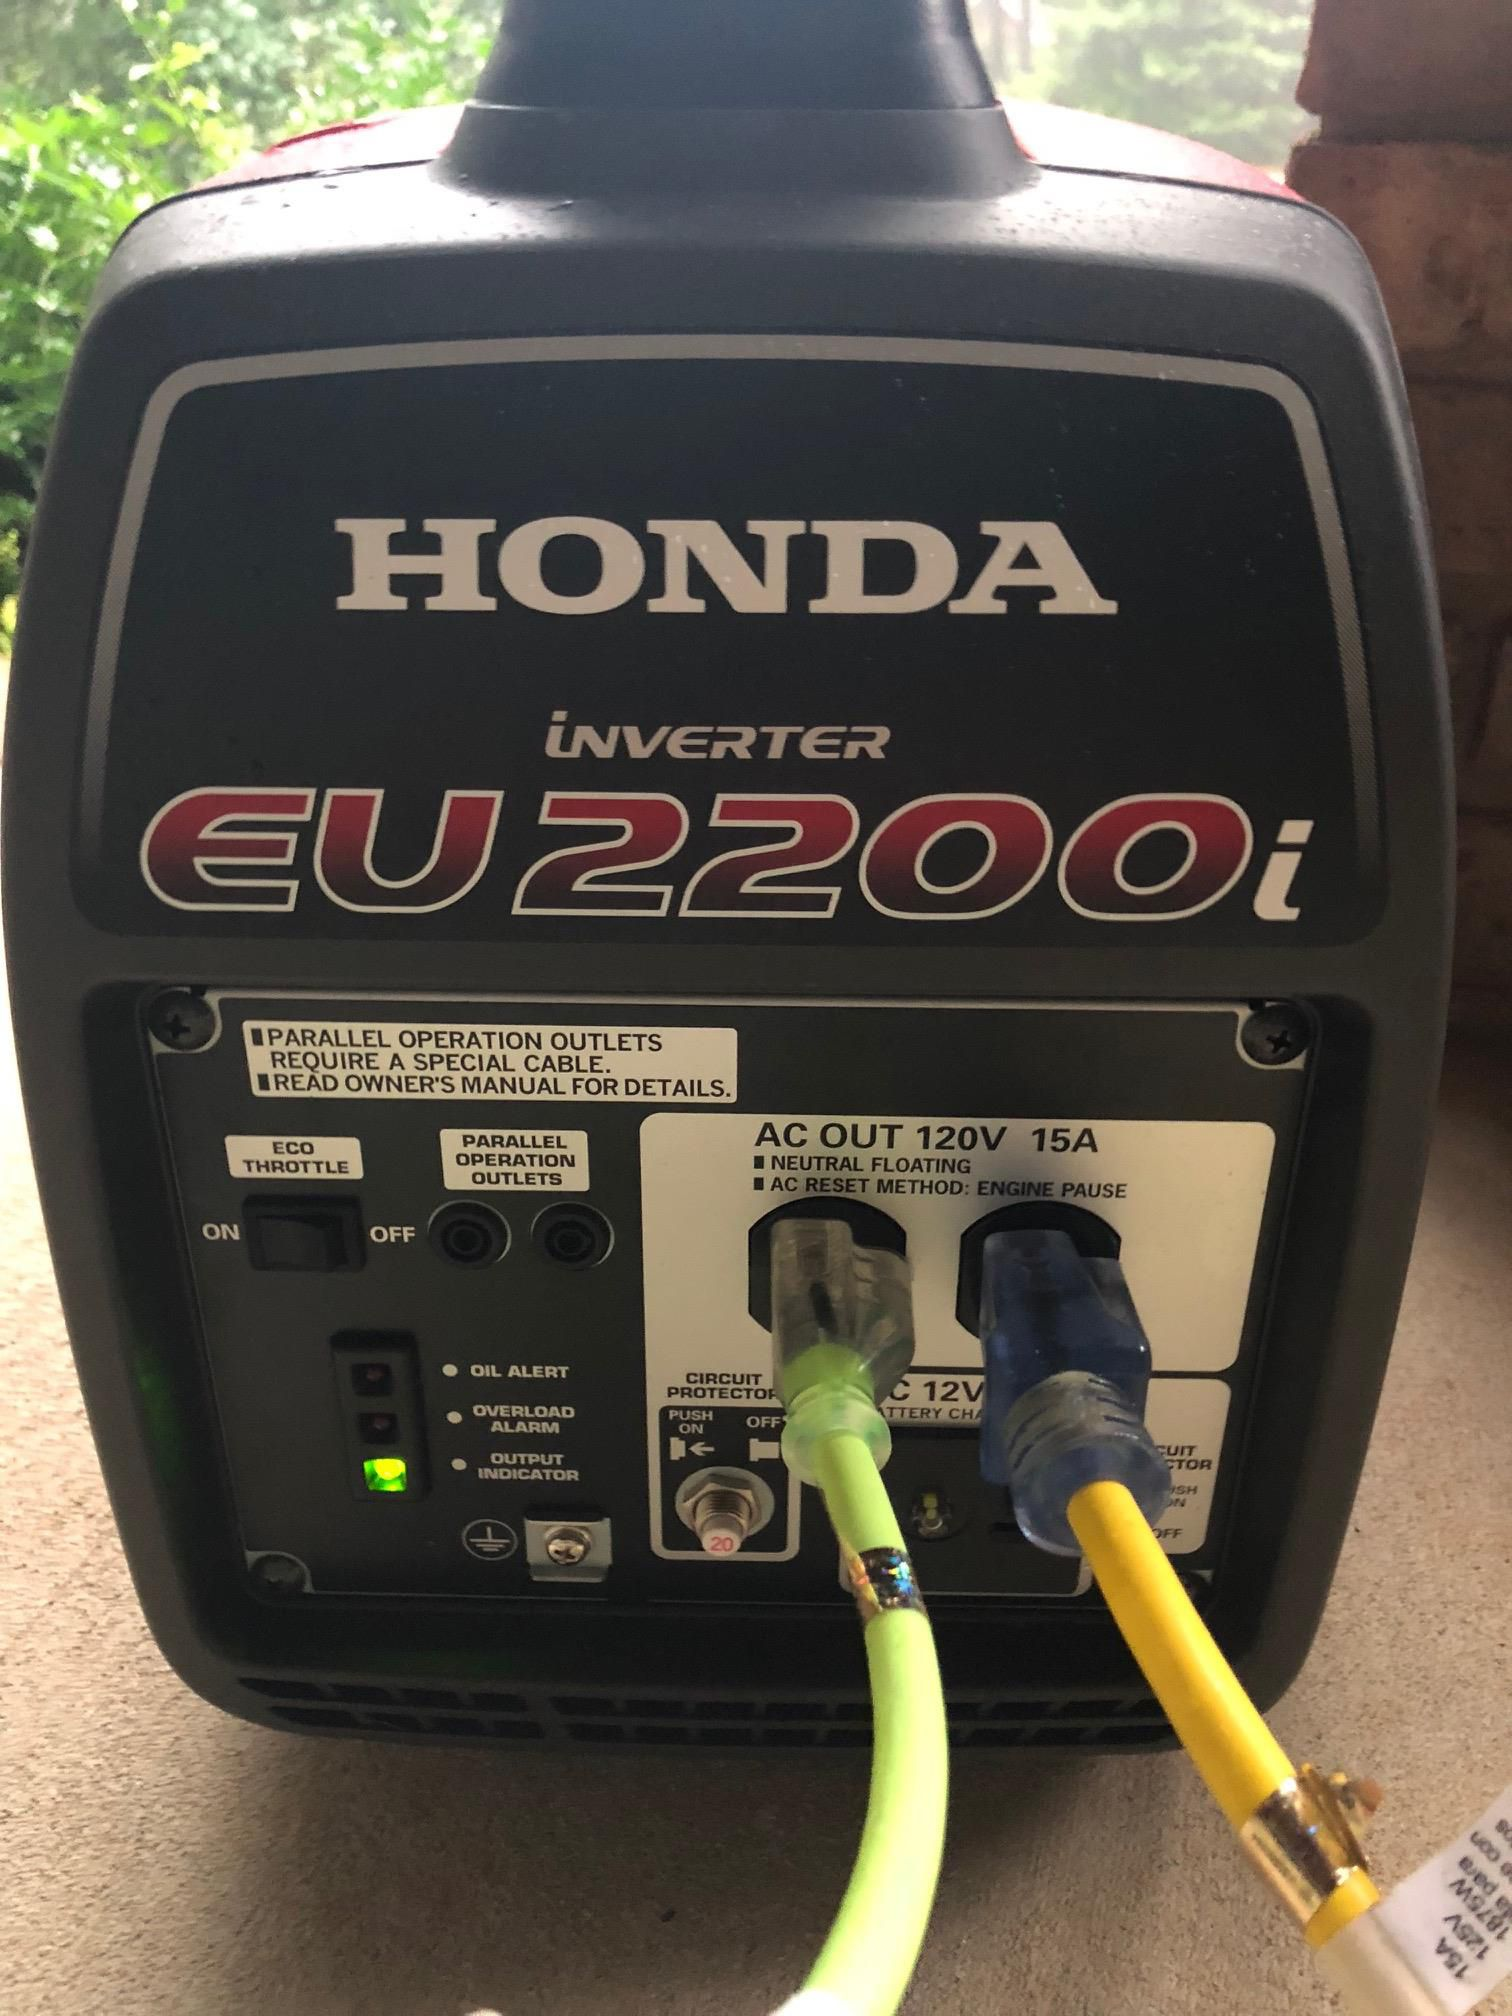 Honda Eu2200i Generator How Im Getting Through Hurricane Florence Ac Voltage Detector Circuit Related Keywords Suggestions